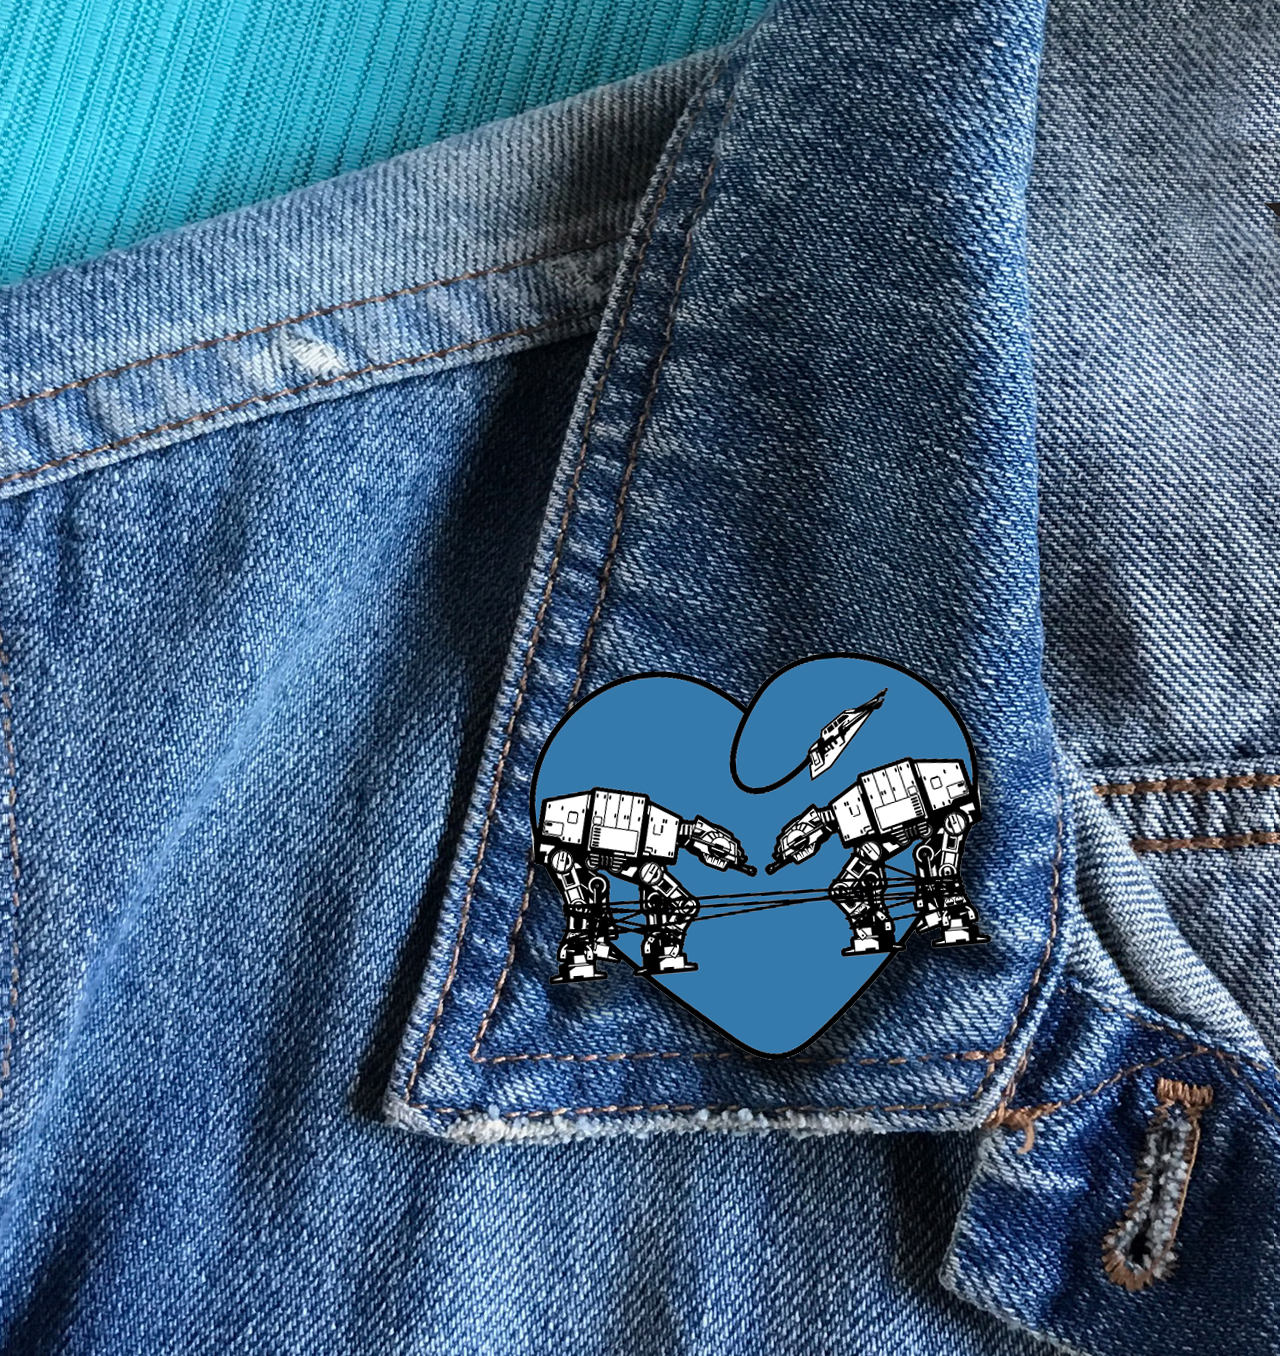 Enamel Pin: Love AT-AT First Sight - Blue